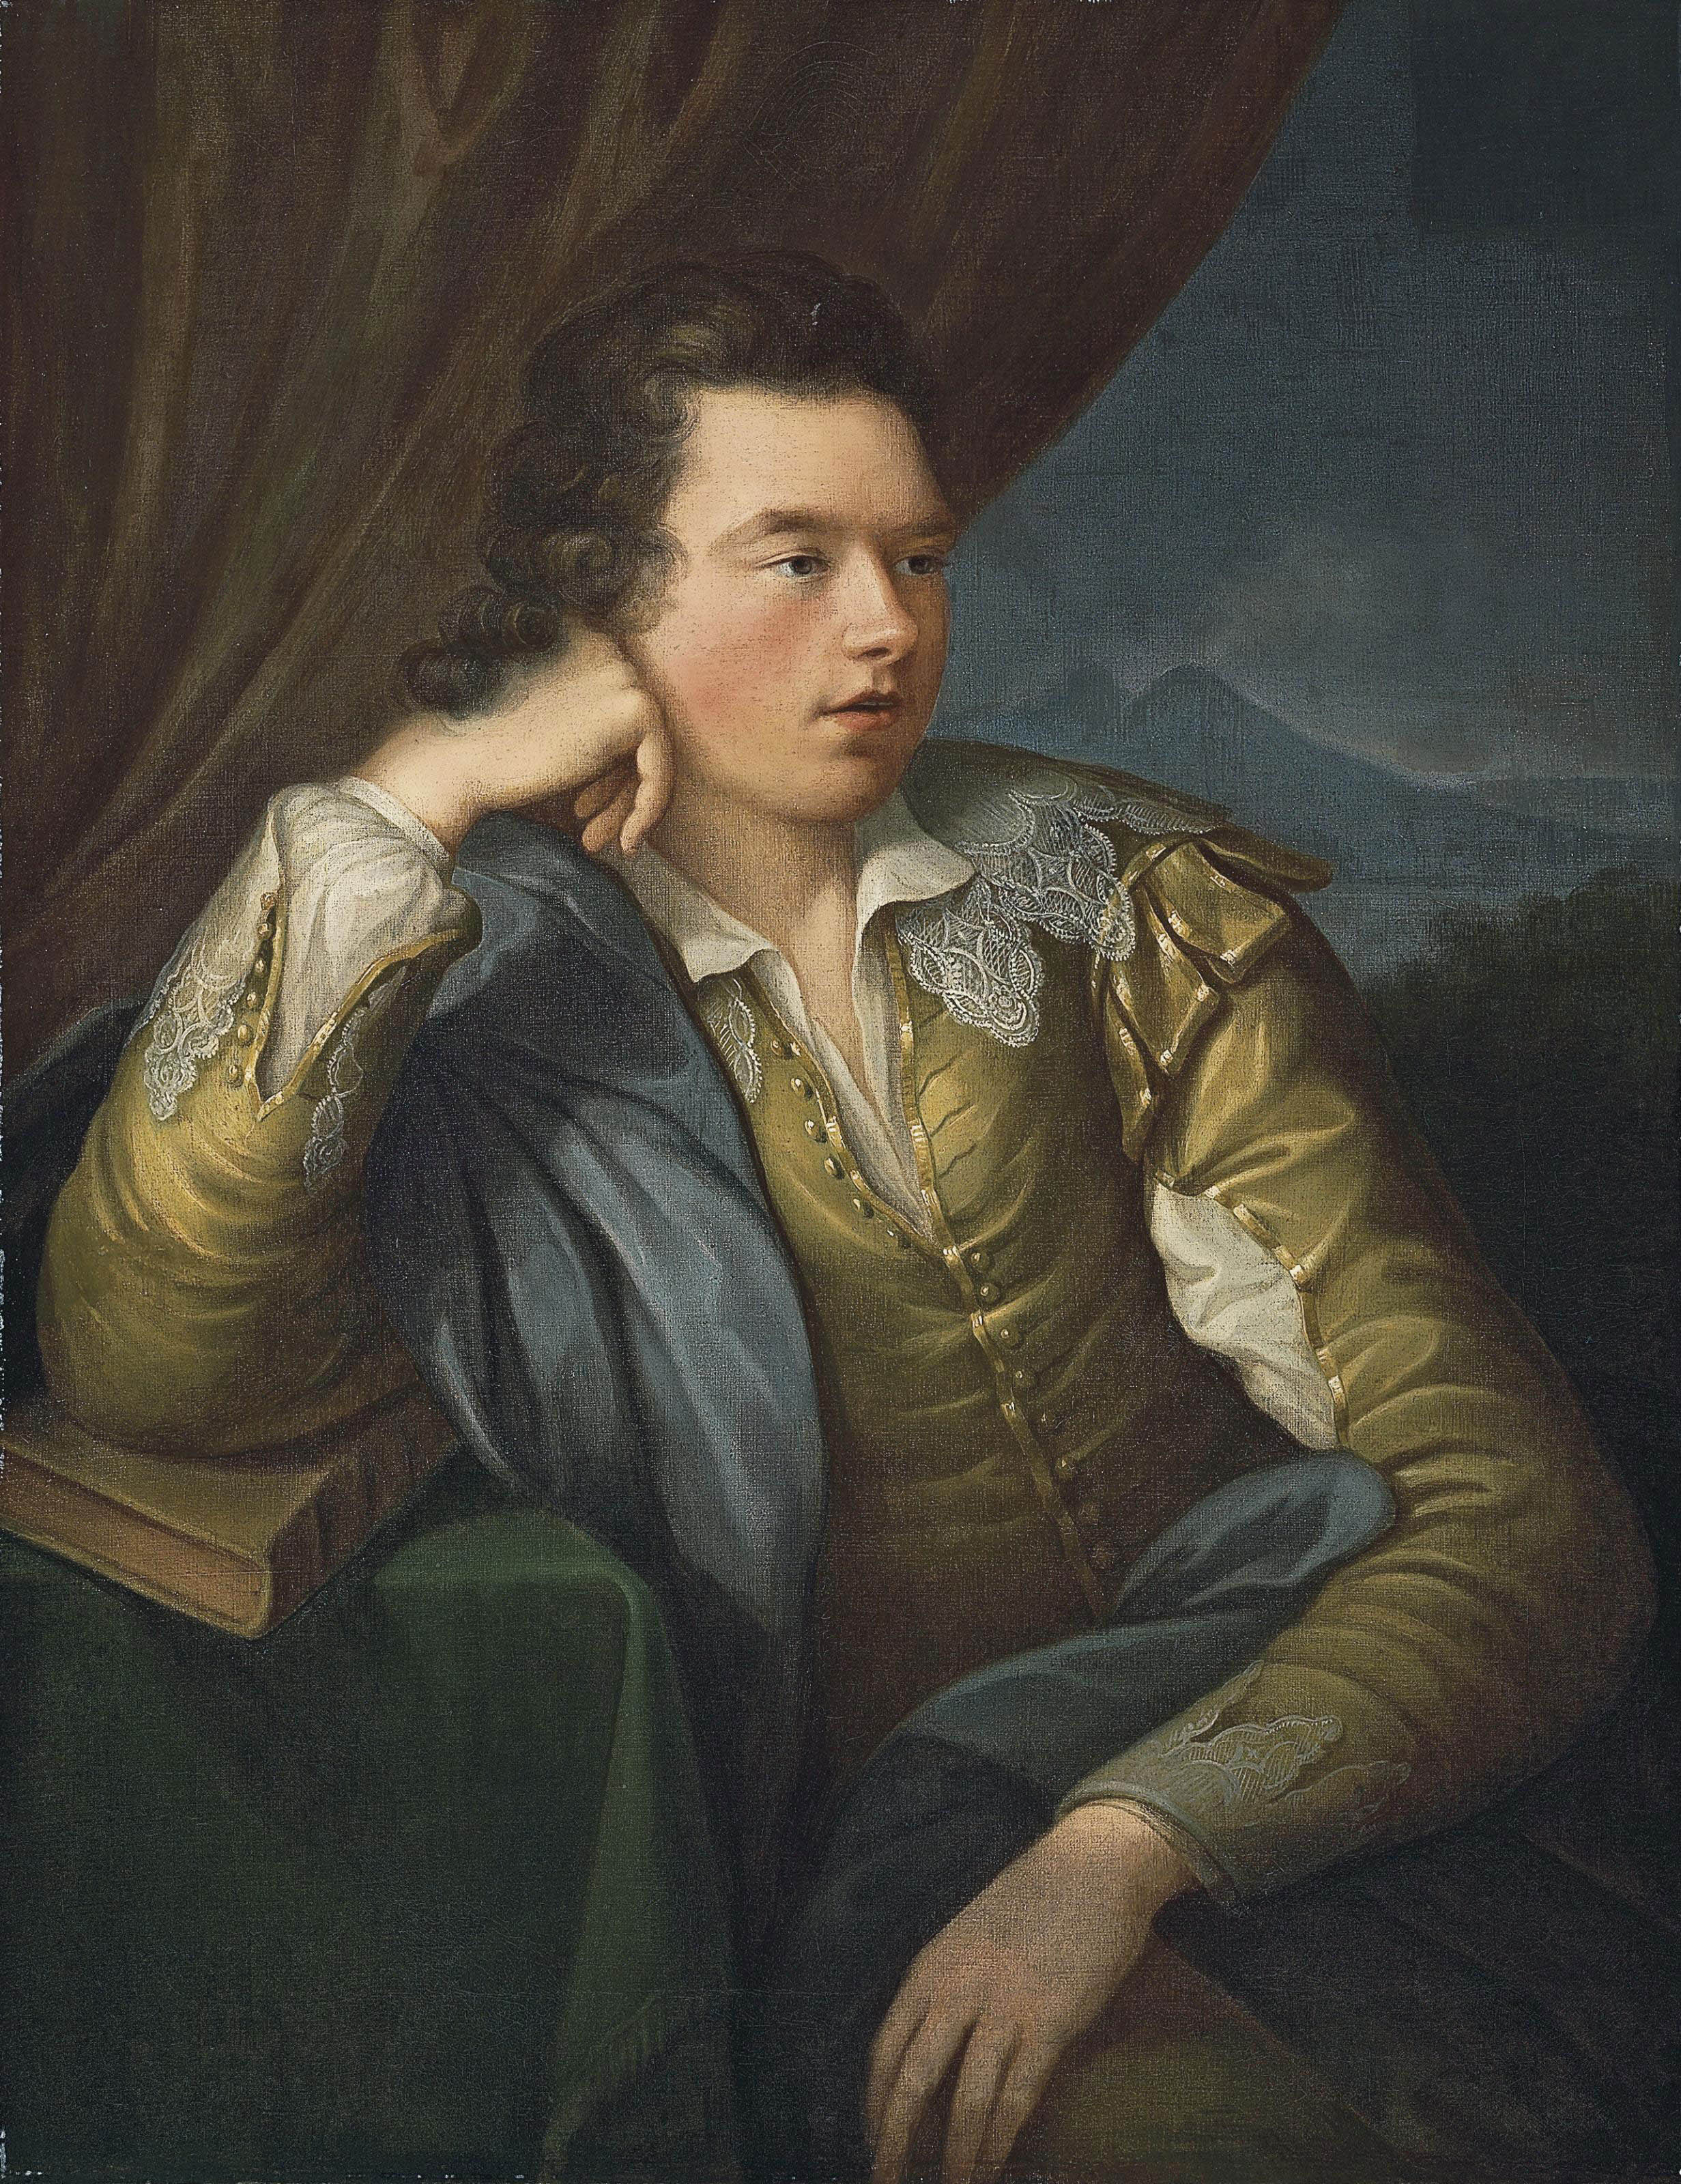 Portrait of John Campbell, 4th Earl and 1st Marquess of Breadalbane (1762-1834), three-quarter-length, in a yellow jacket with lace collar and cuffs, his right arm resting on a book, a mountainous landscape beyond